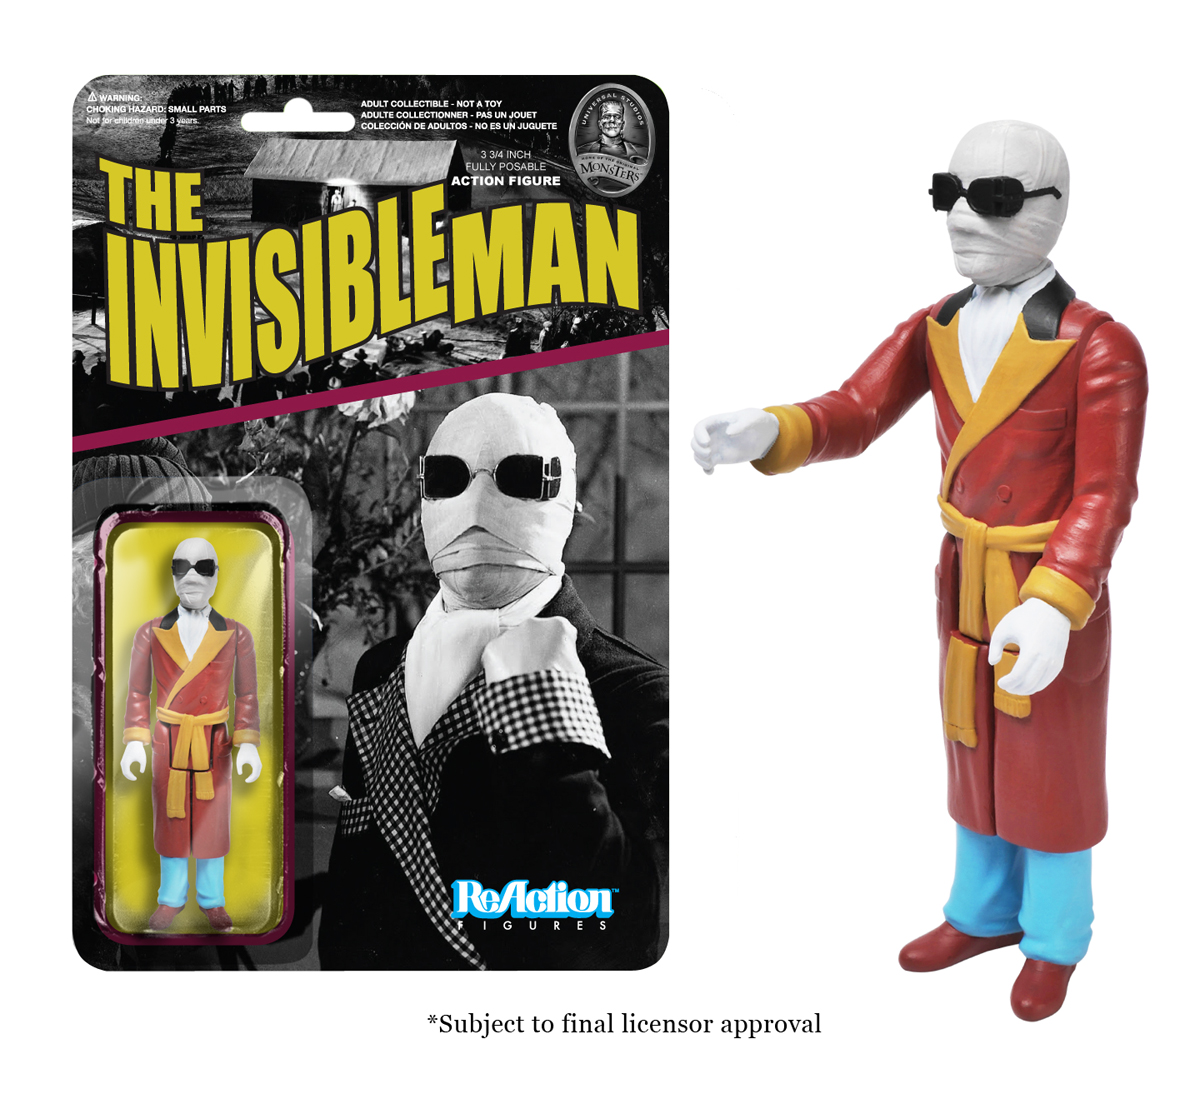 sambo doll invisible man essay The dancing sambo dolls being sold by tod clifton symbolize invisible man phdessay is an educational resource where over 40,000 free essays are collected.